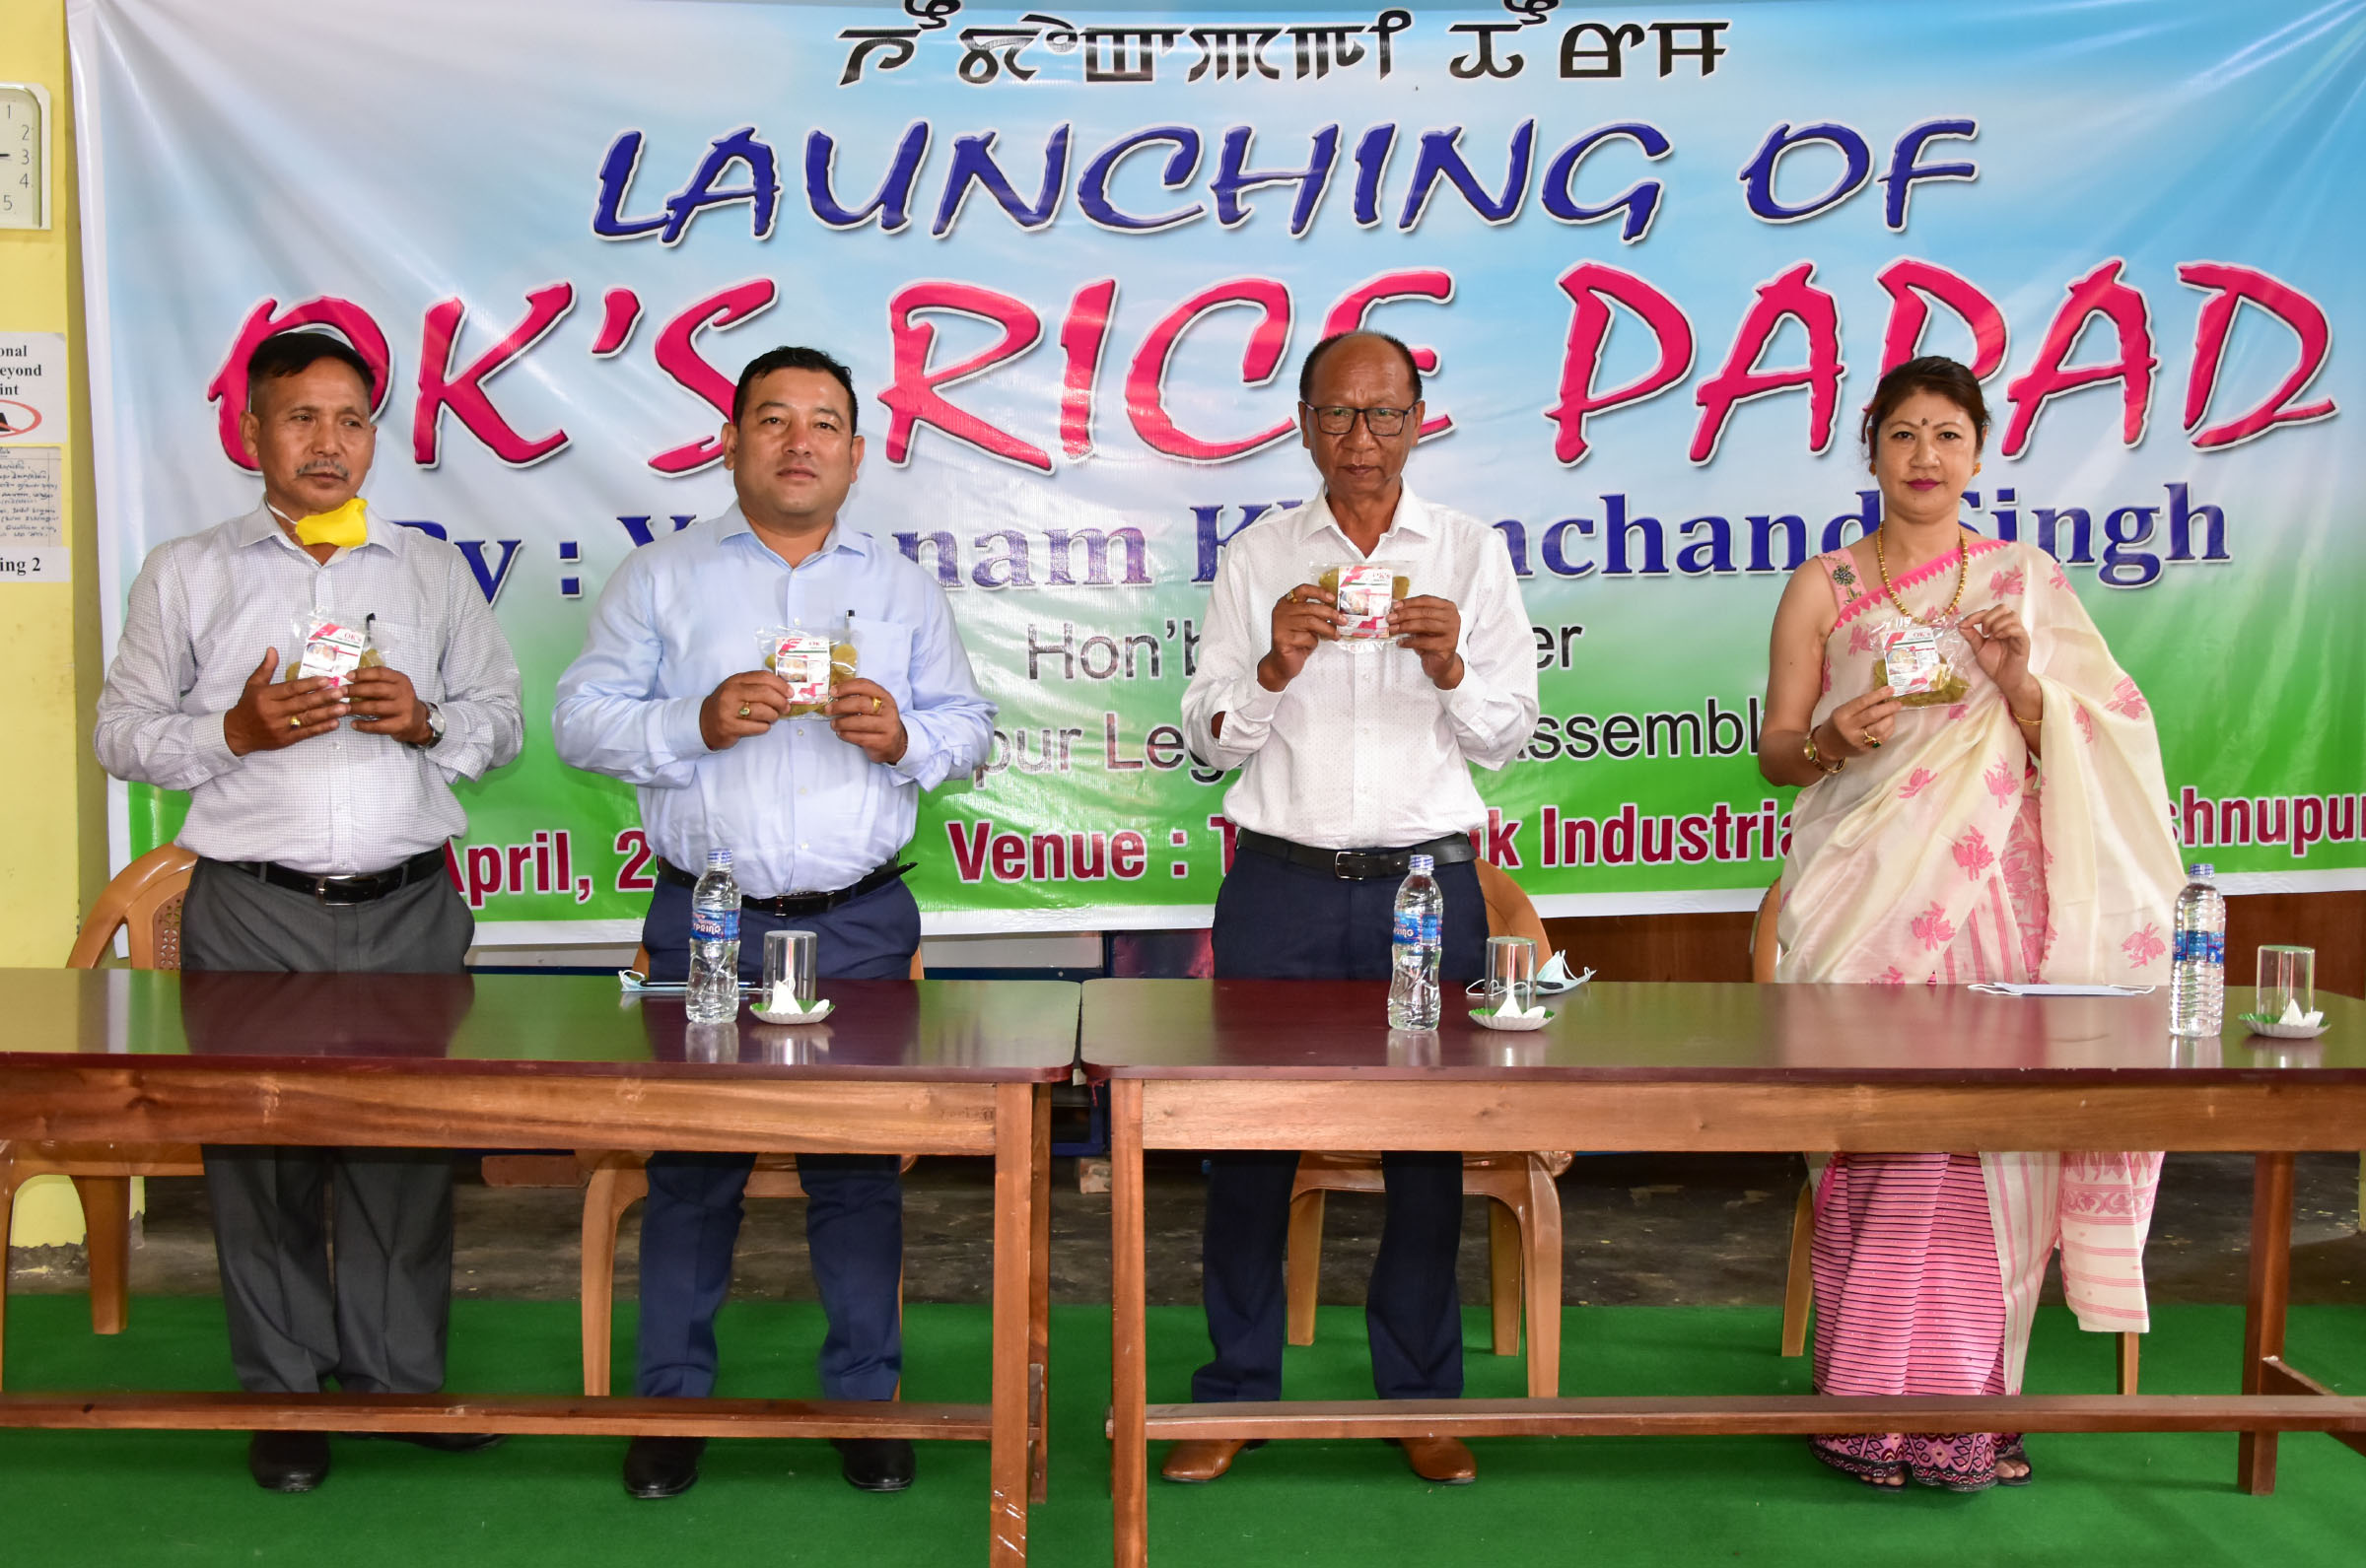 Speaker launches OK'S Rice Papad